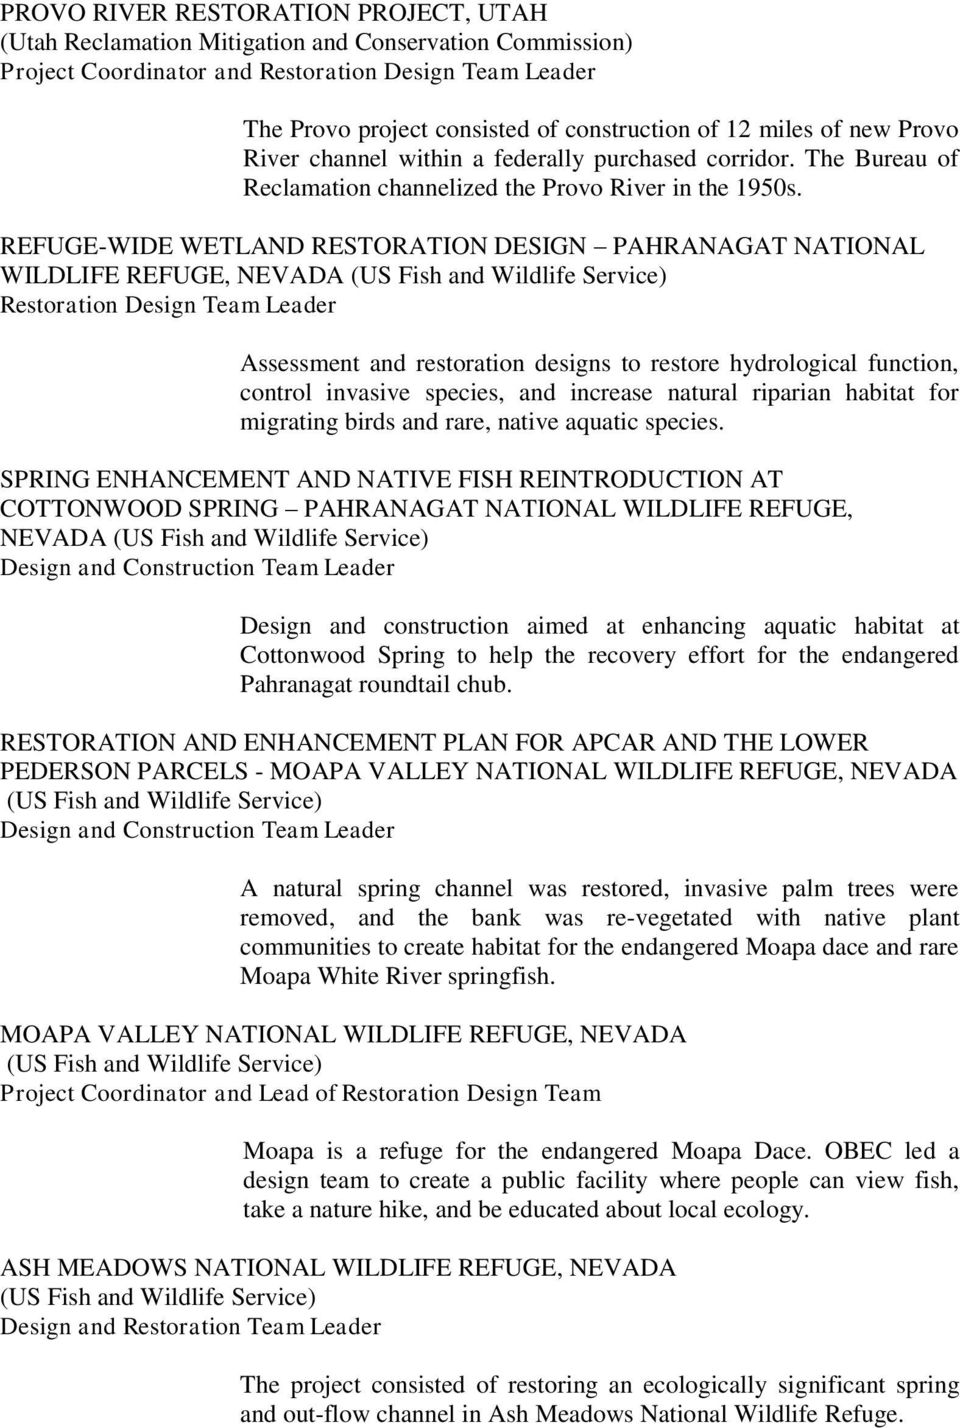 REFUGE-WIDE WETLAND RESTORATION DESIGN PAHRANAGAT NATIONAL WILDLIFE REFUGE, NEVADA Restoration Design Team Leader Assessment and restoration designs to restore hydrological function, control invasive